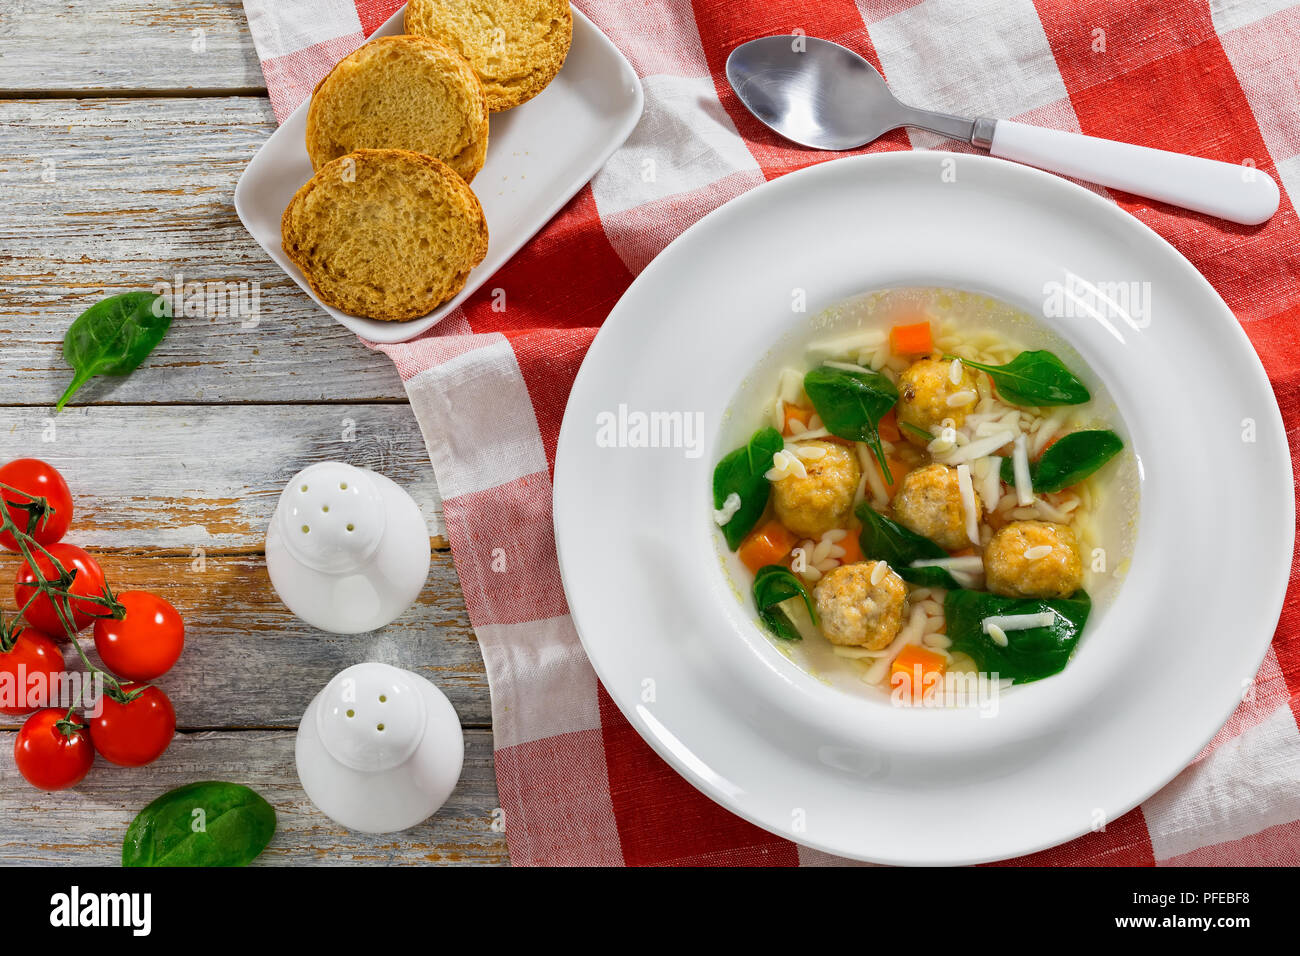 italian wedding soup with meatballs in white wide rim bowl on table cloth, salt and pepper shakers, crostini, fresh green spinach leaves and tomatoes  - Stock Image